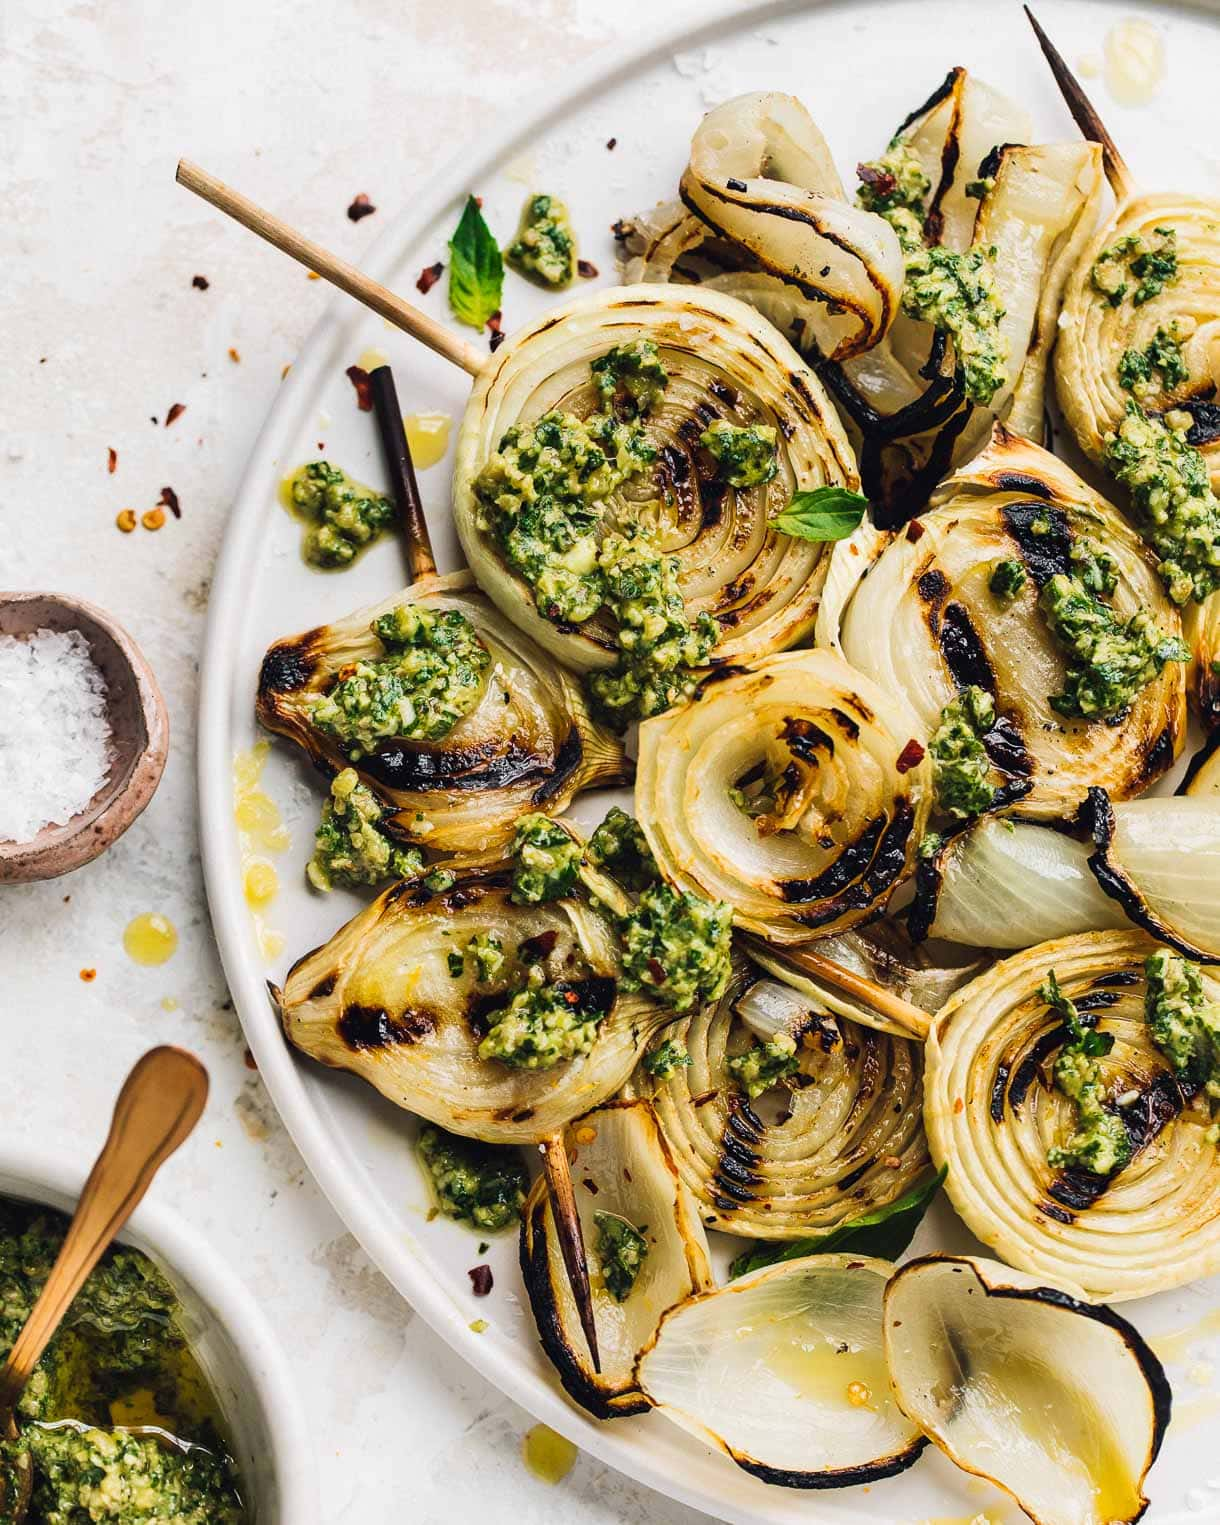 white plate holding grilled onions on skewers with pesto